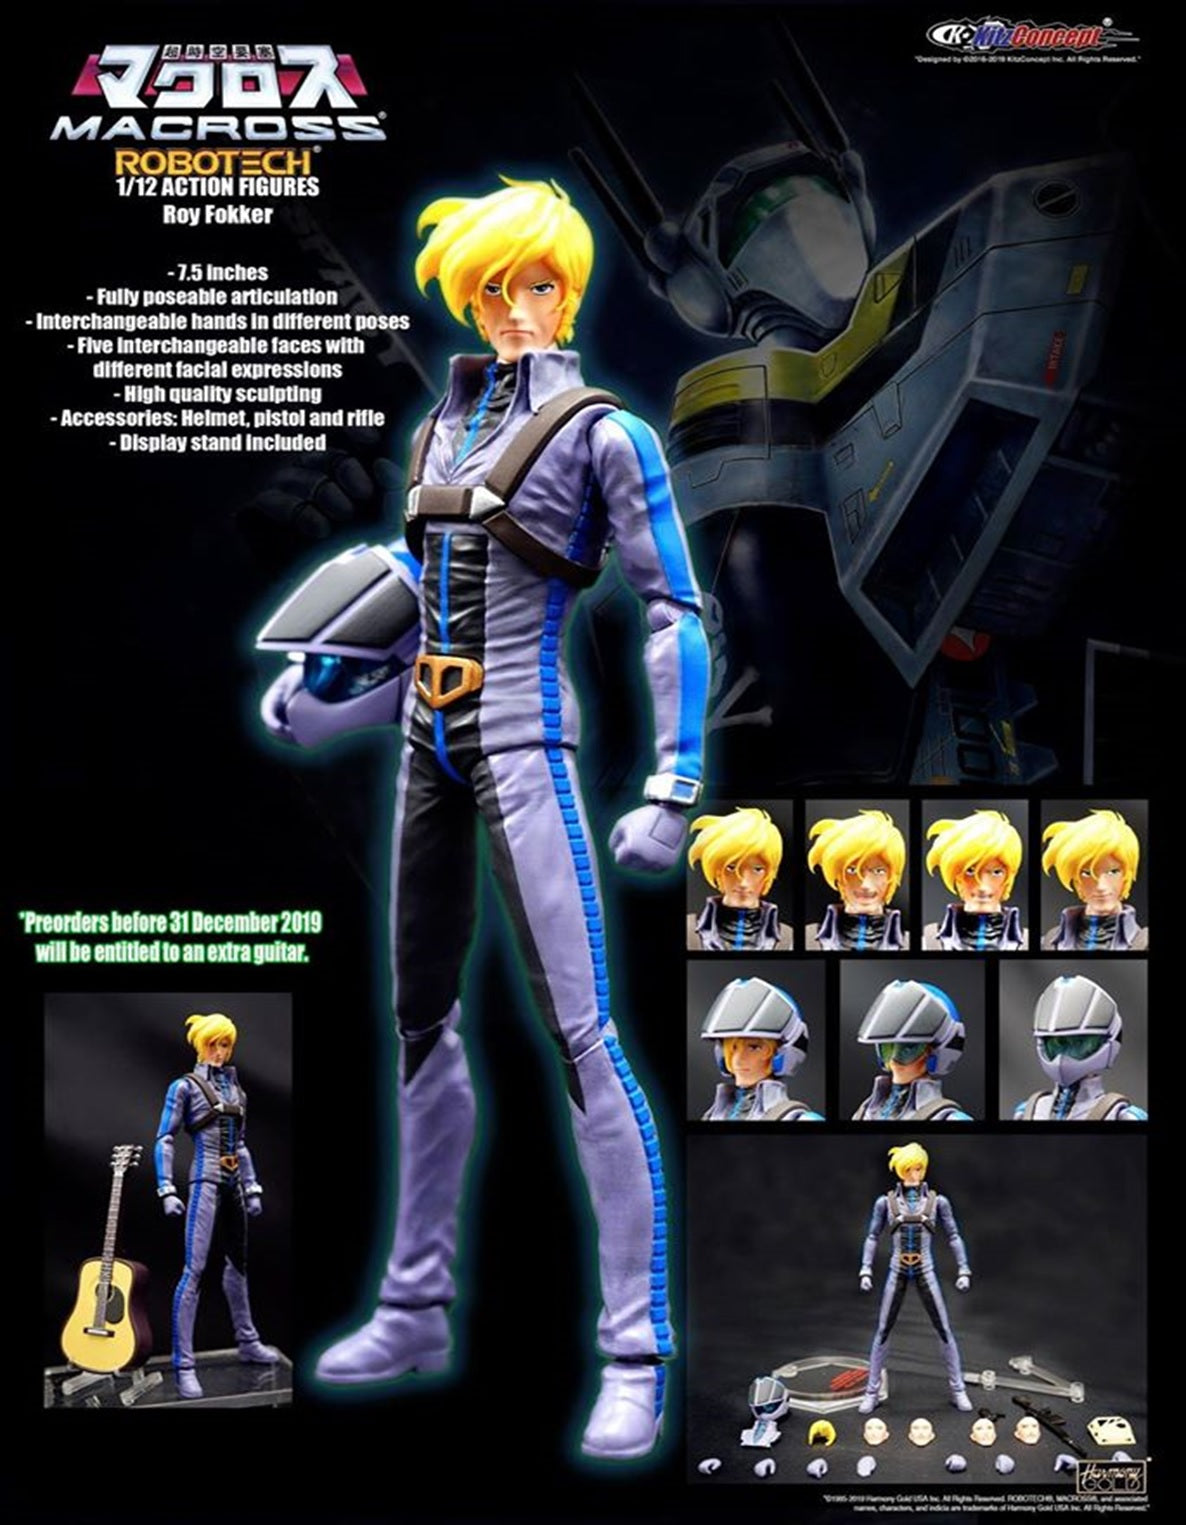 【已截訂】KitzConcept MACROSS 1/12 ACTION FIGURES- ROY FOKKER Action Figure [付全訂包本地順豐運費]